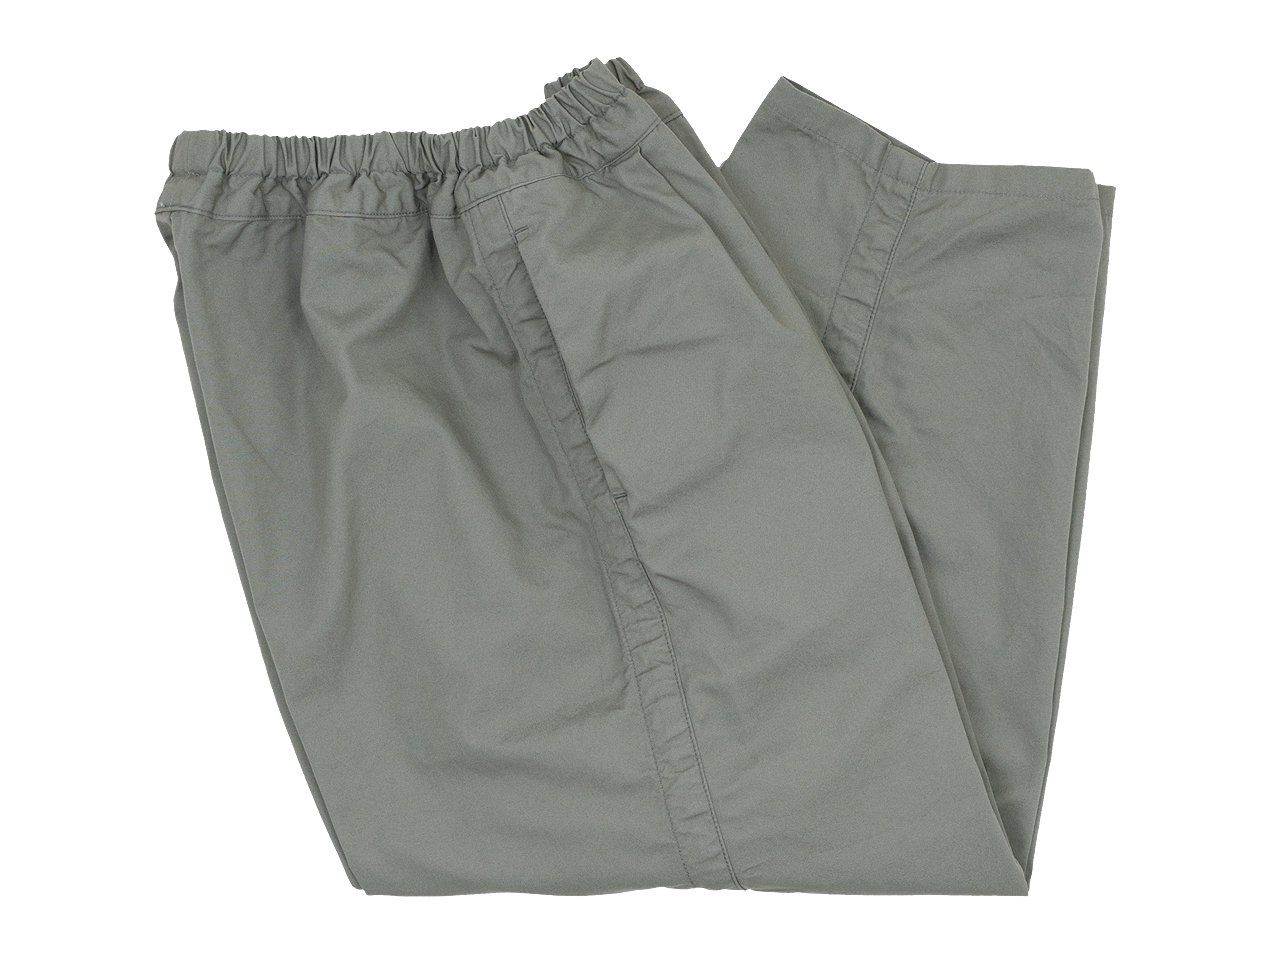 ordinary fits NARROW BALL PANTS GRAY